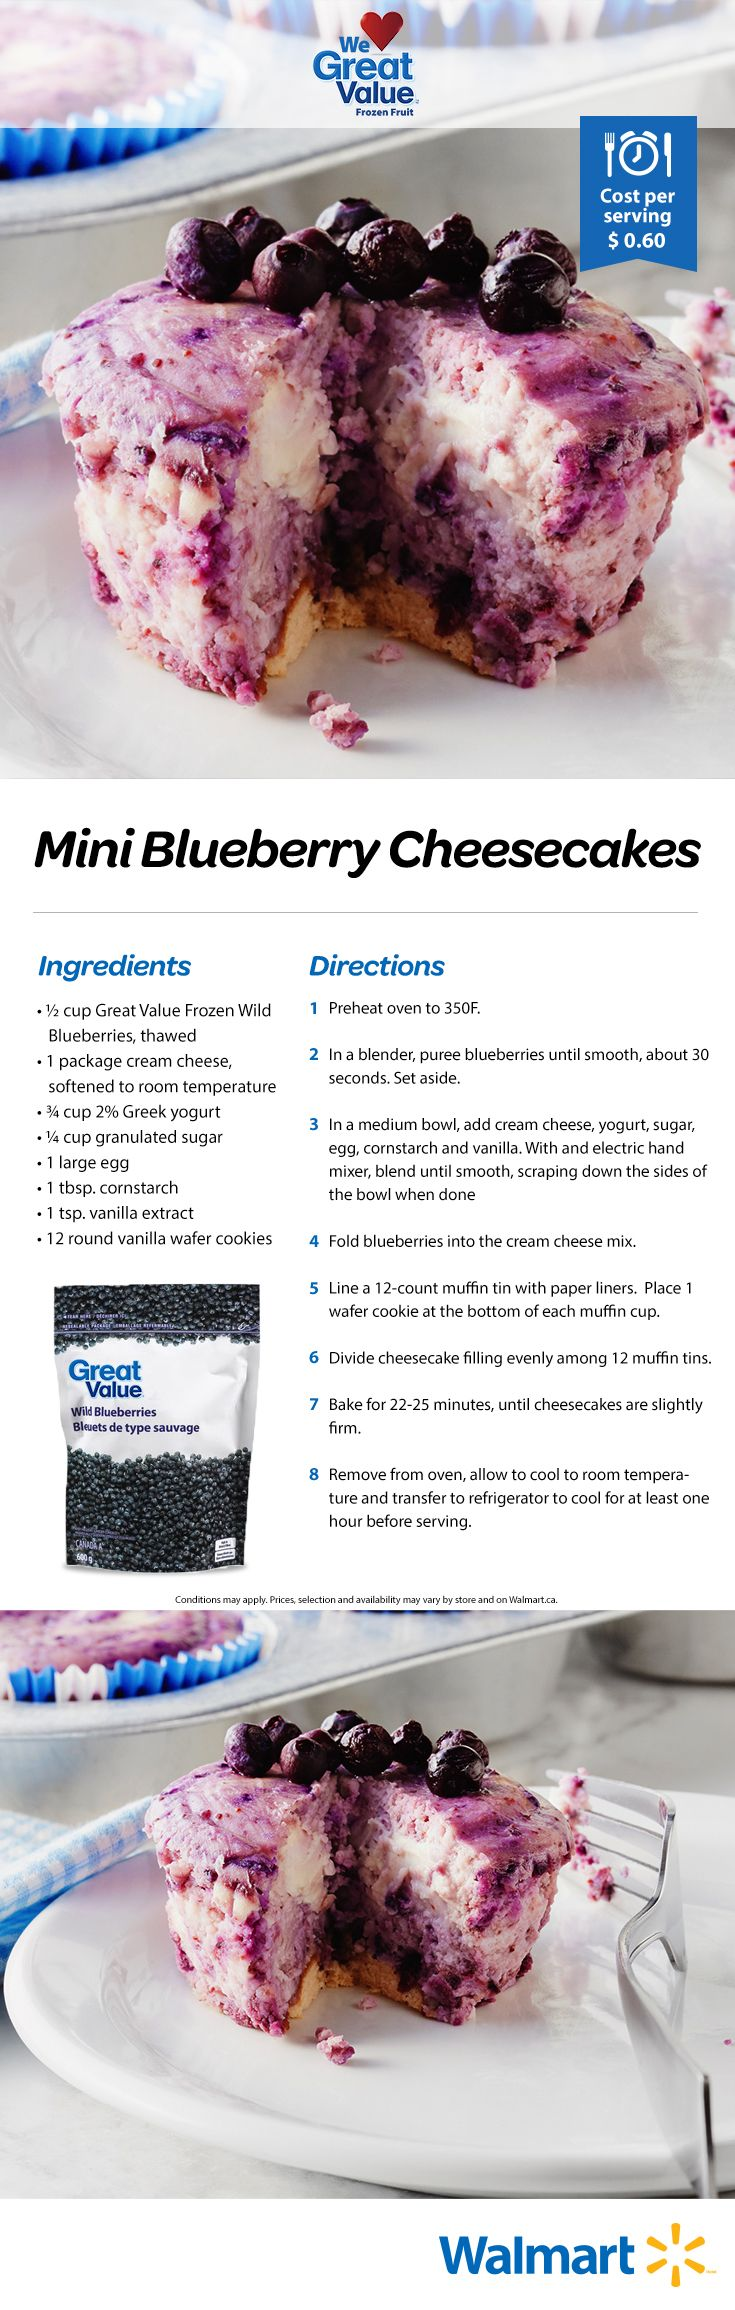 When you're in a dessert pinch, these mini cheesecakes are your go-to. Such simple ingredients can make really delicious desserts! Our trick is our Great Value frozen berries. #realsolutions #minicheesecakes #blueberrycheesecakes #cheesecakerecipes #WeLoveGreatValue